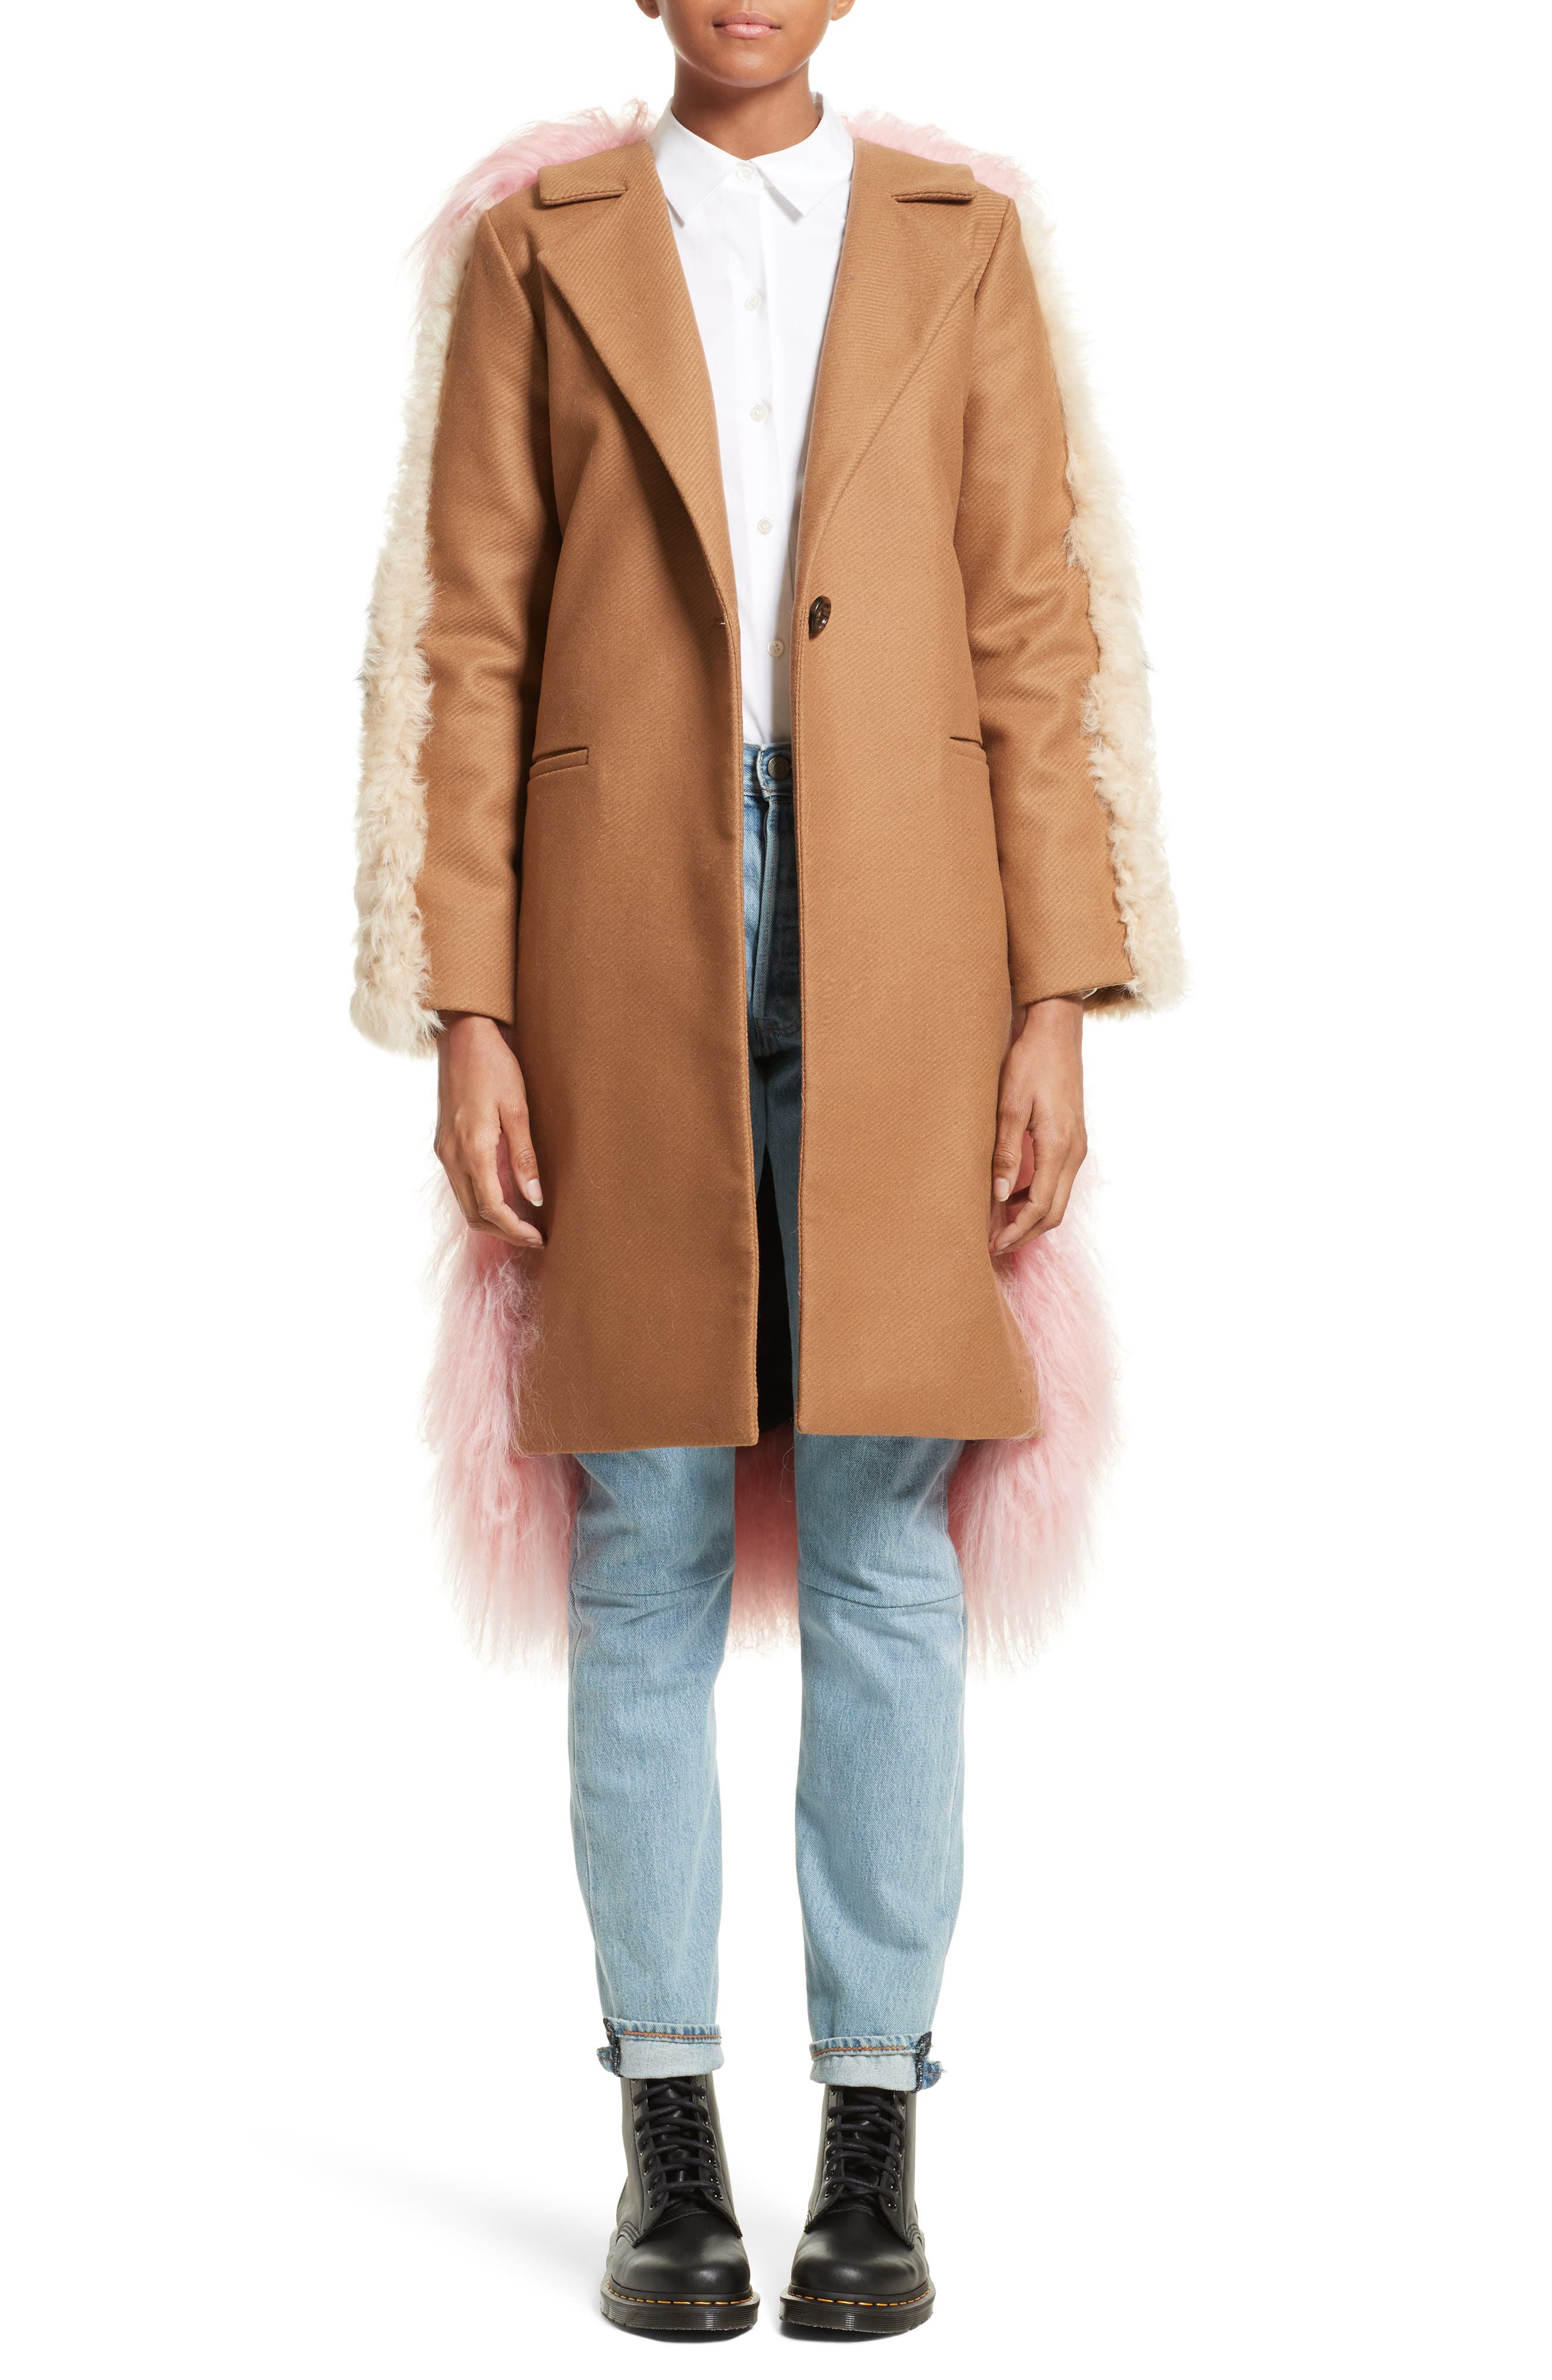 Mingo Wool Blend & Genuine Shearling Coat,                         Main,                         color, Curry Pink